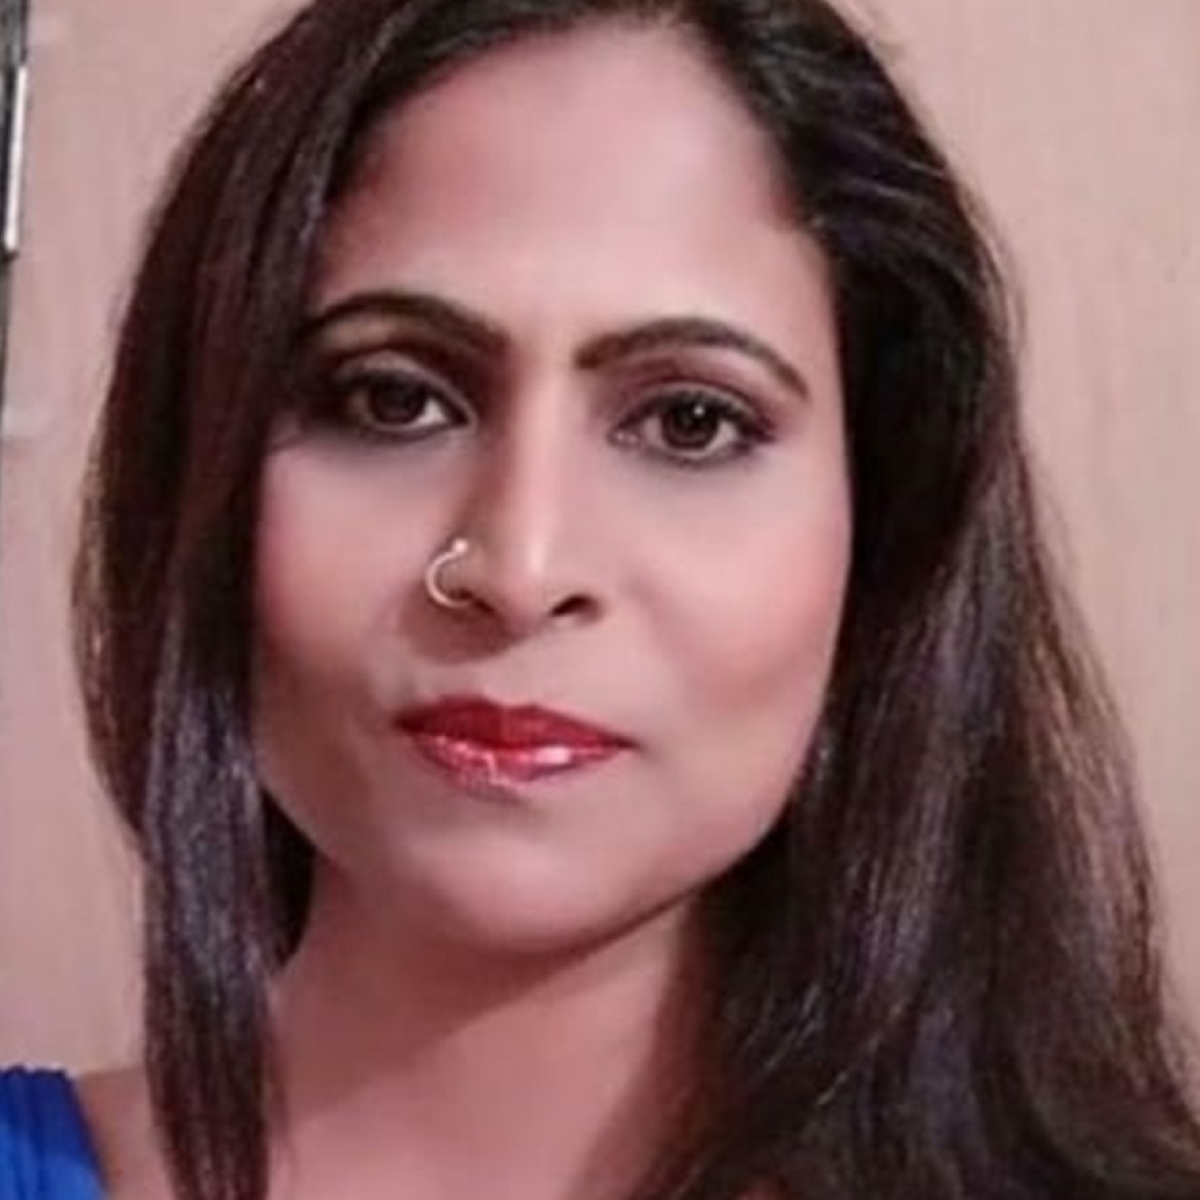 'Never consider anyone your friend': Bhojpuri actress Anupama Pathak commits suicide in Mumbai